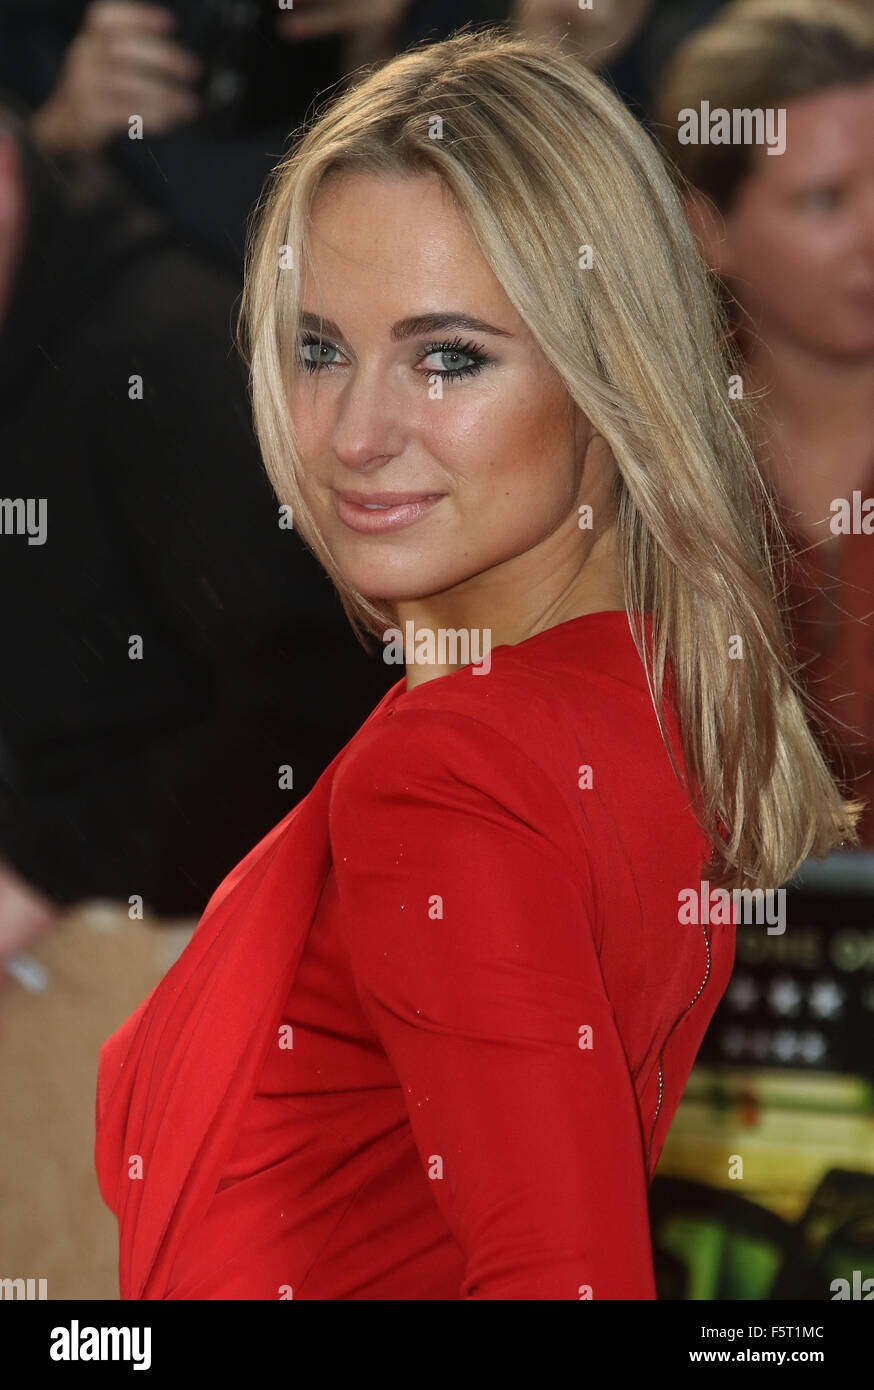 Sep 21, 2015 - London, England, UK - 'Sicario' UK Premiere at Empire, Leicester Square - Kimberley Garner - Stock Image